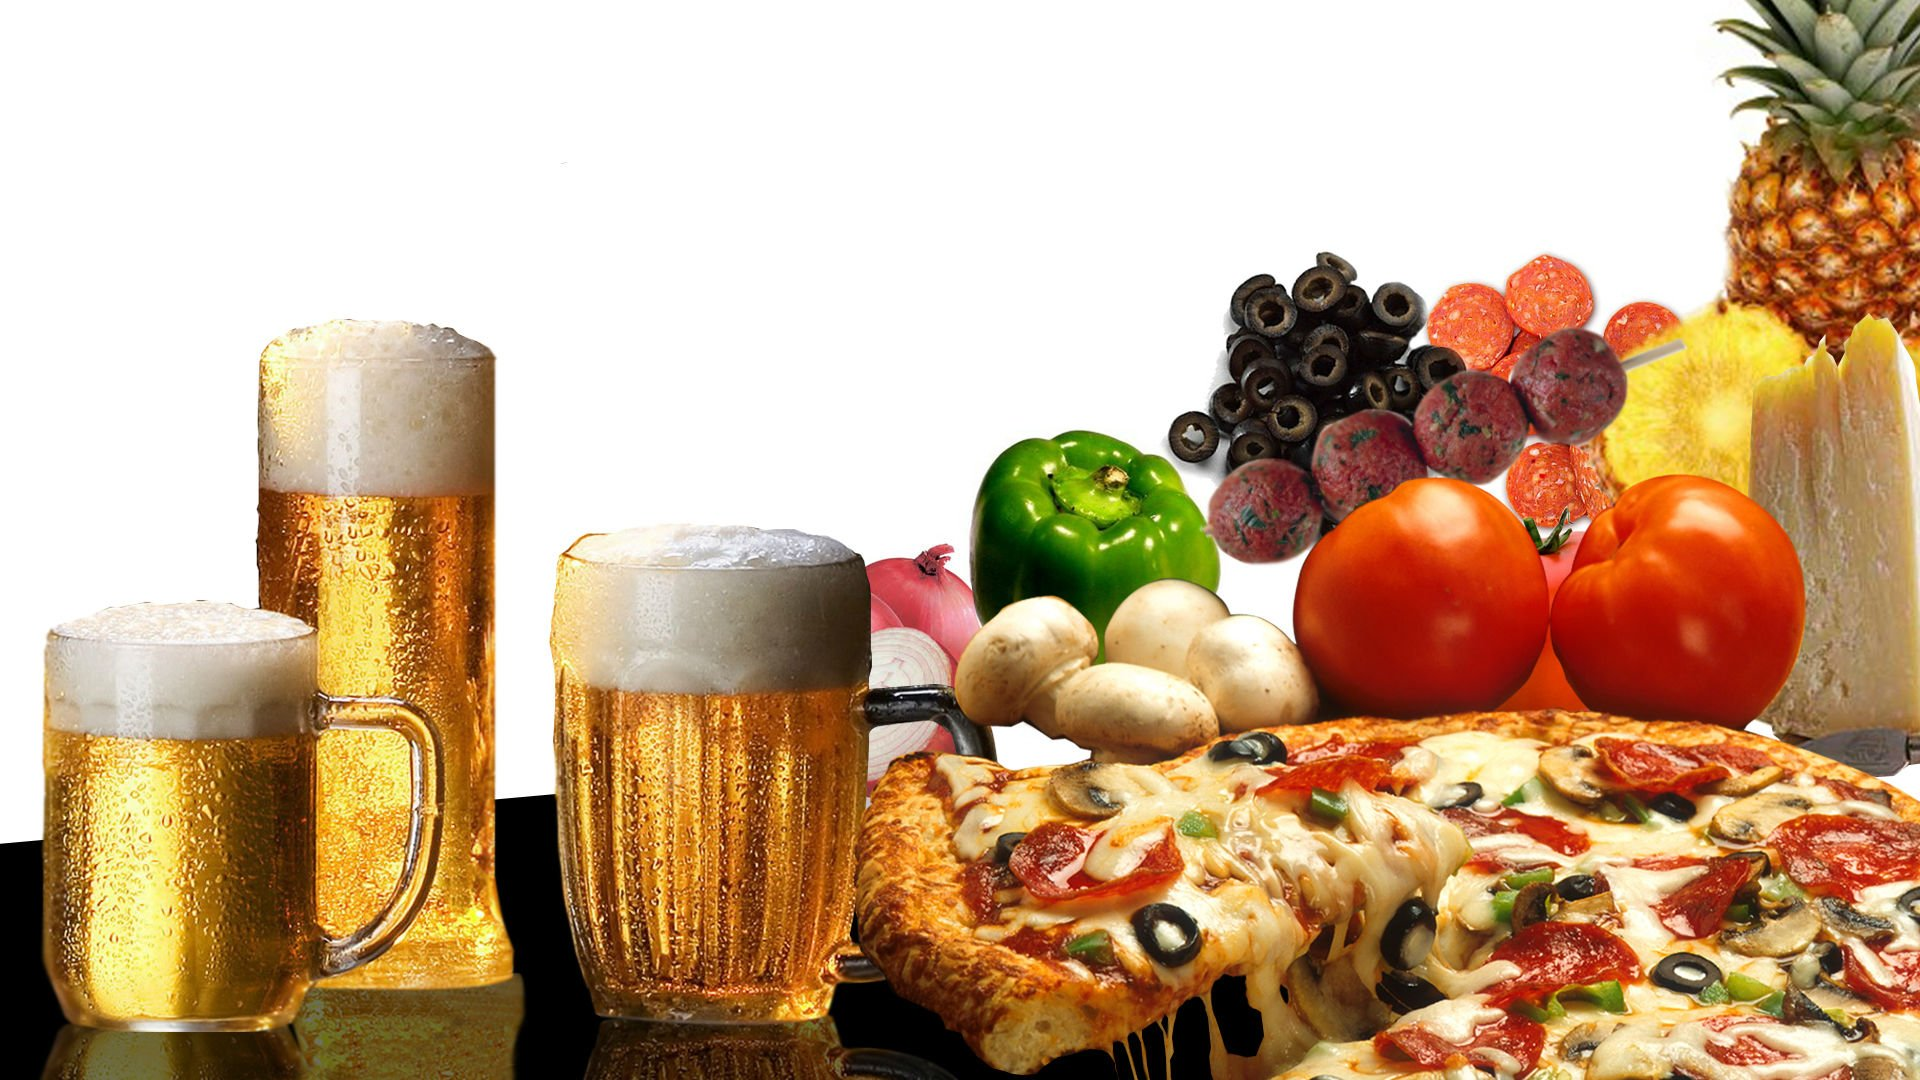 Beer alcohol drink poster pizza food wallpaper | 1920x1080 | 334842 ...